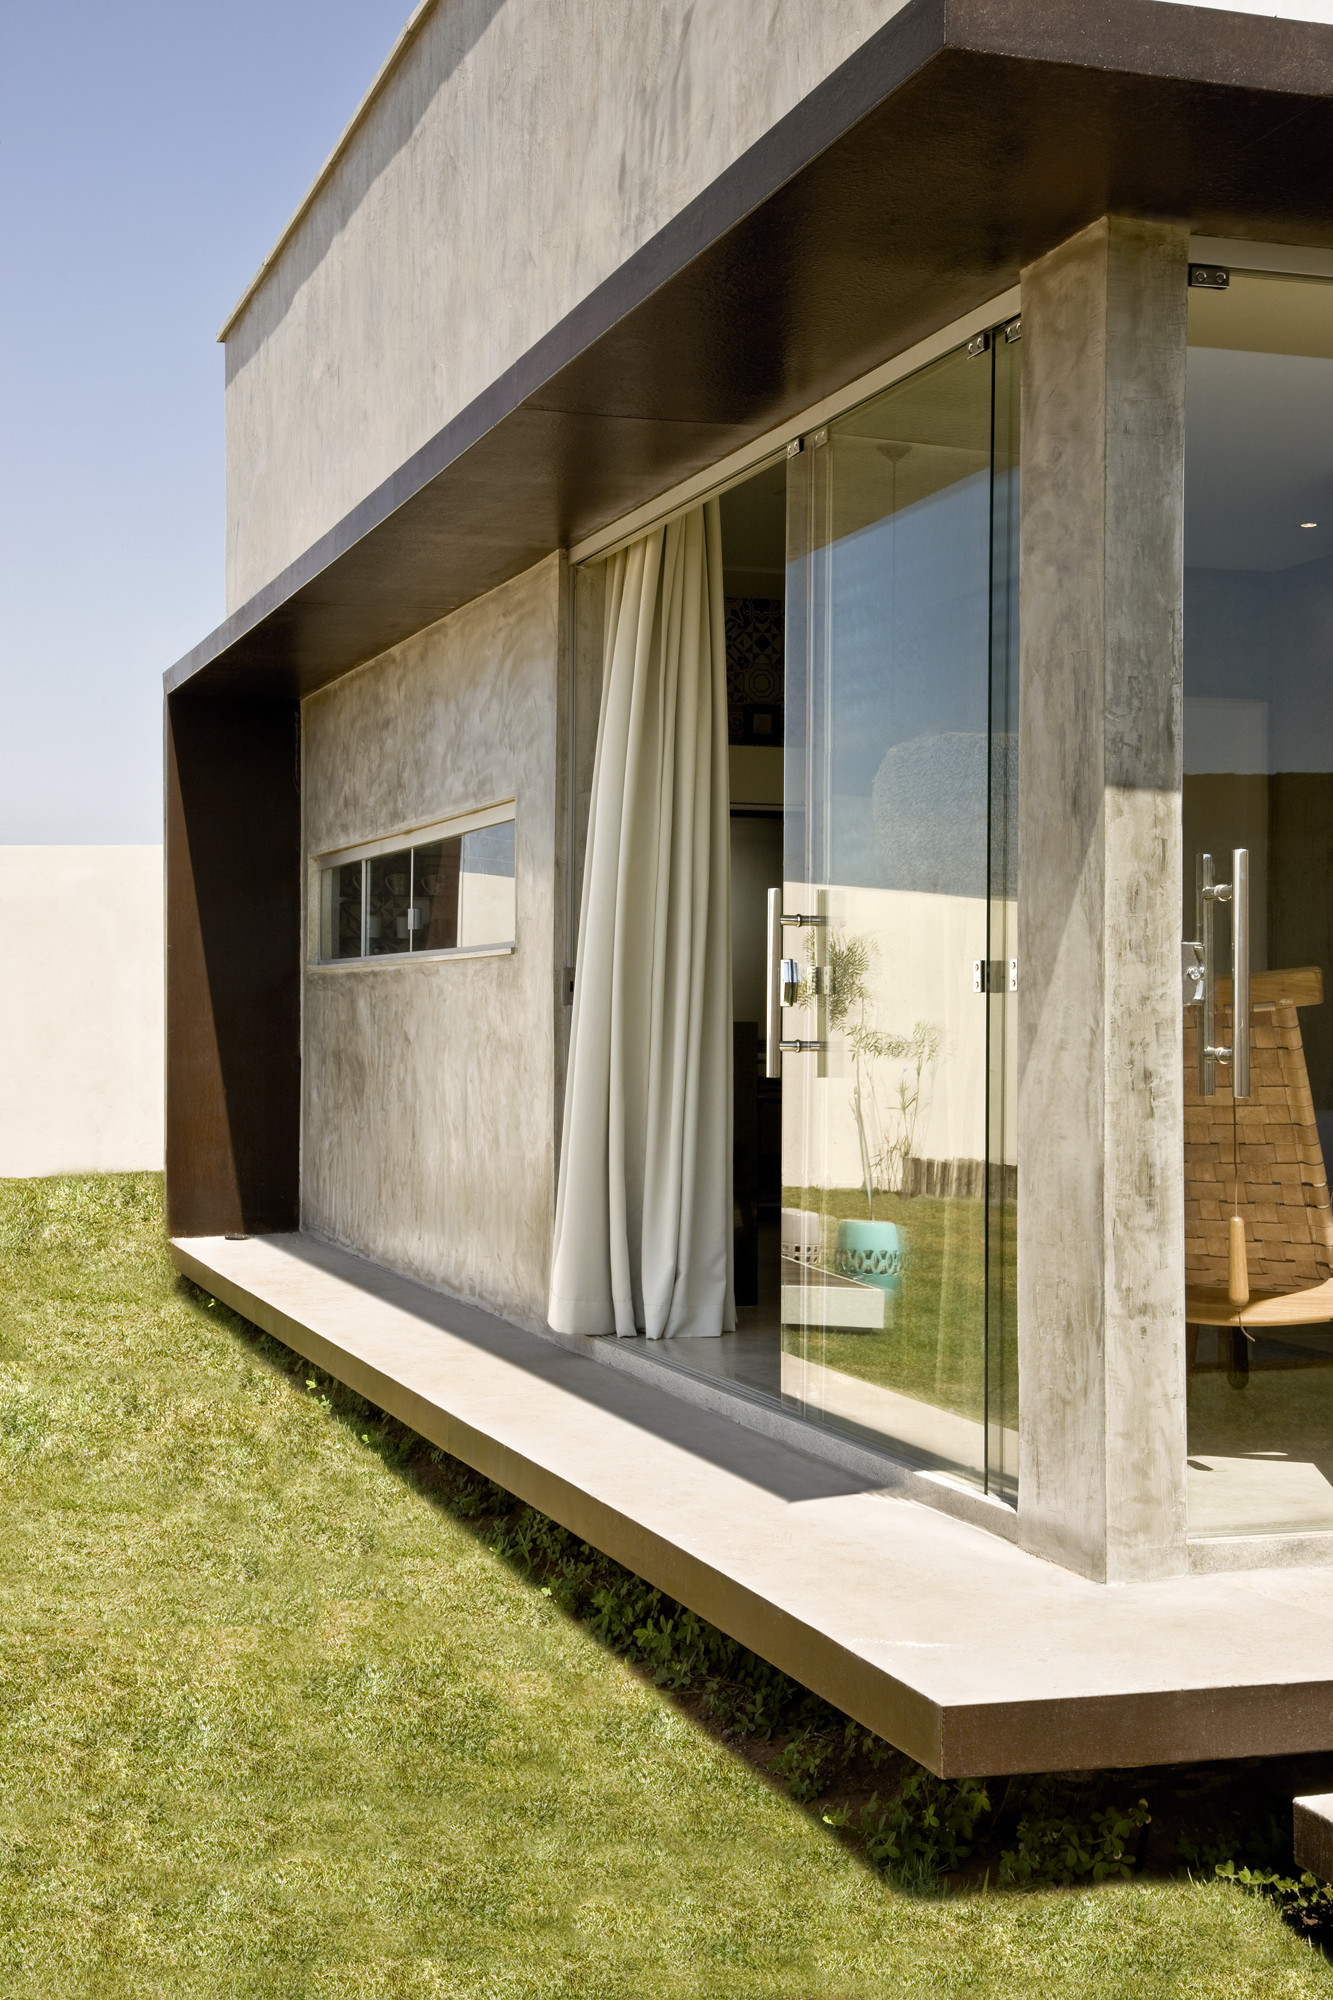 Gallery of Box House / 1:1 arquitetura:design - 3 on apple box house, simple box house, white box house, rectangular house, metal box house, space box house, box type house, 20x20 house, triangle house, sweet pea tiny house, glass box house, modern box house, wooden box house, flat box house, steel box house, corrugated box house, cone house, blue box house, small box house, flower box house,